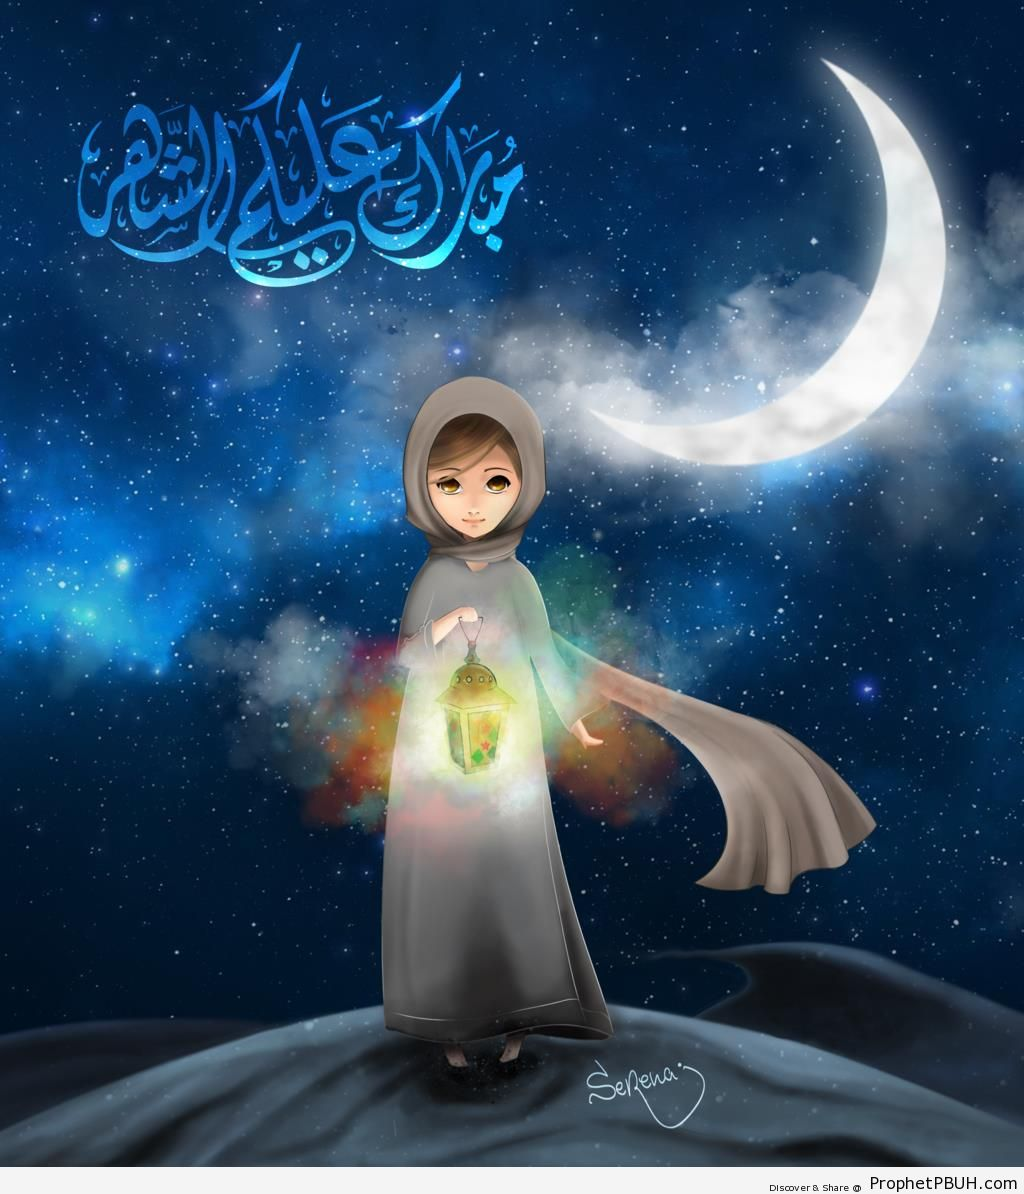 Blessed Month (With Muslimah Drawing and Crescent Moon) - Drawings